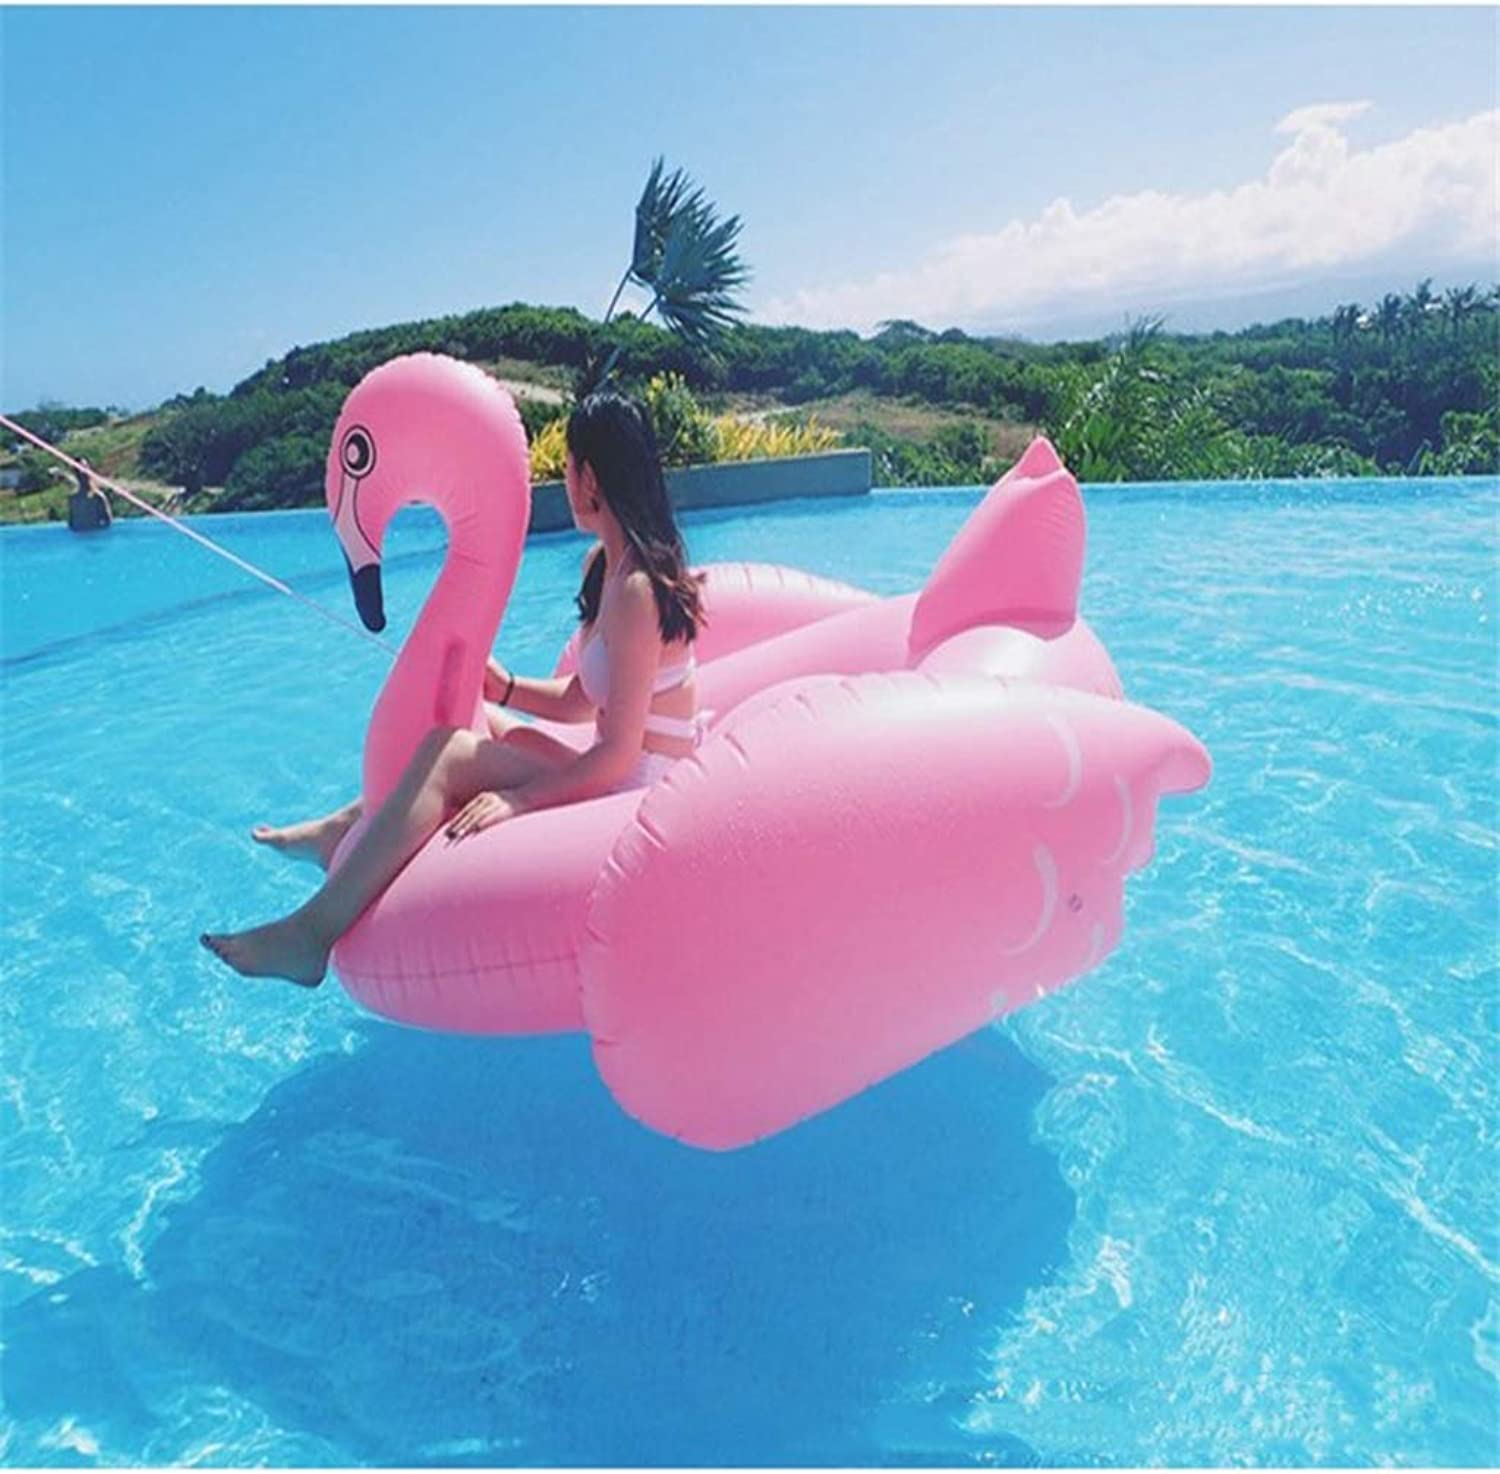 Inflatable Pool Toys Giant Flamingo Swimming Ring Summer Toy Pool Party Toy with Rapid Valves for Adults and Kids